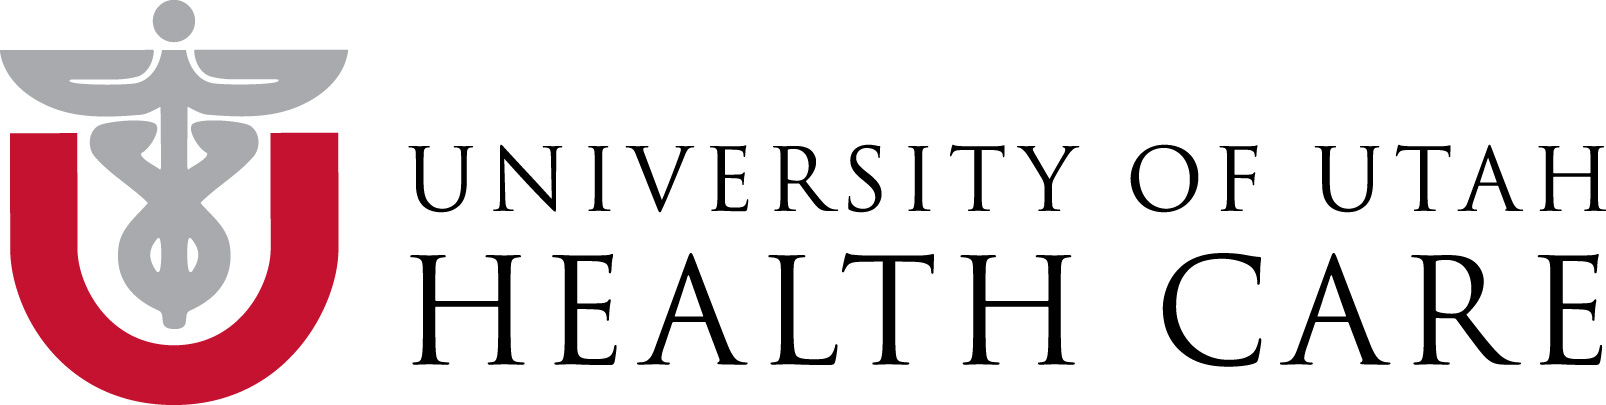 U of U Healthcare logo